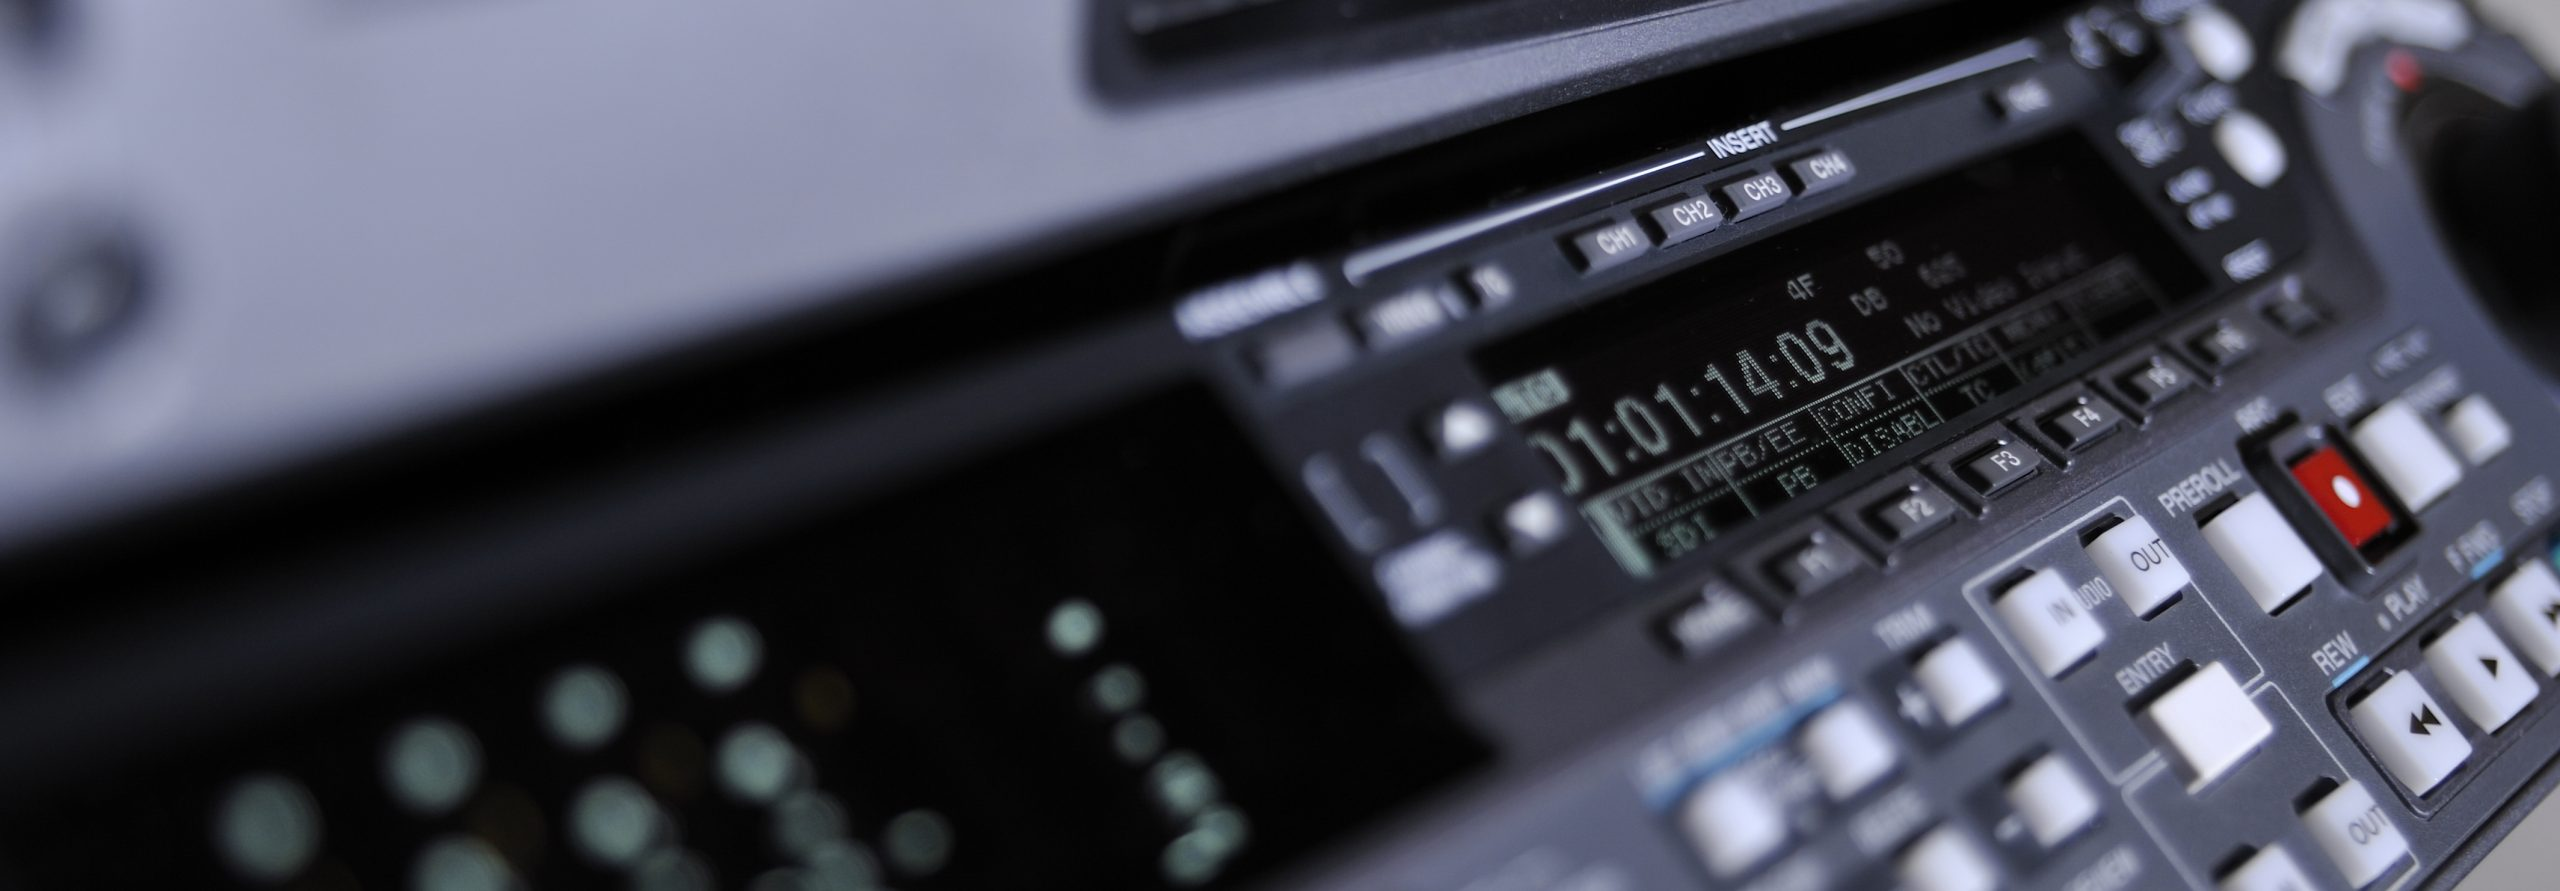 Close-up of the front panel of the professional digital betacam video recorder.  Shallow dof. Displays, equalizer, buttons.